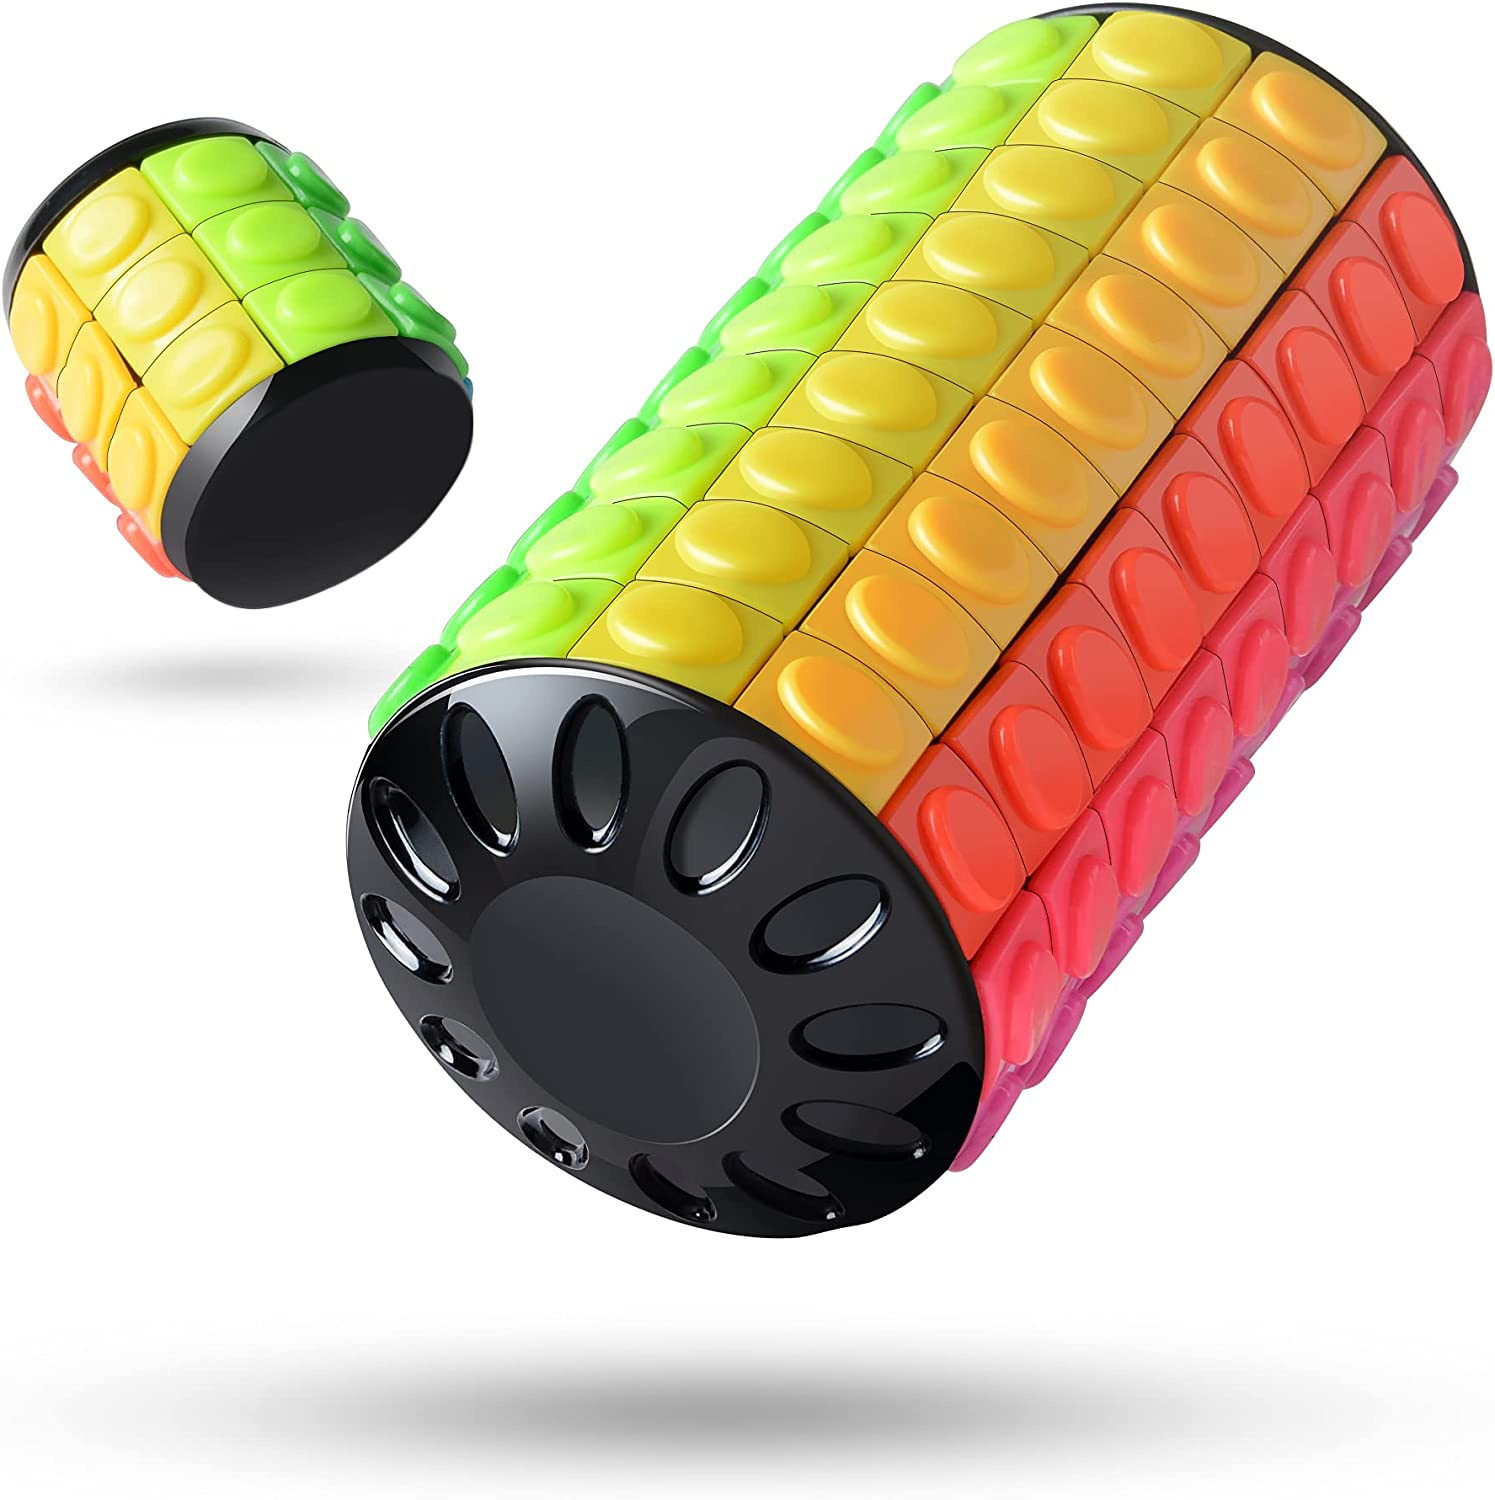 Max 77% OFF Rapayoss Sensory Fidget Toys Stress Hand for Relief cheap